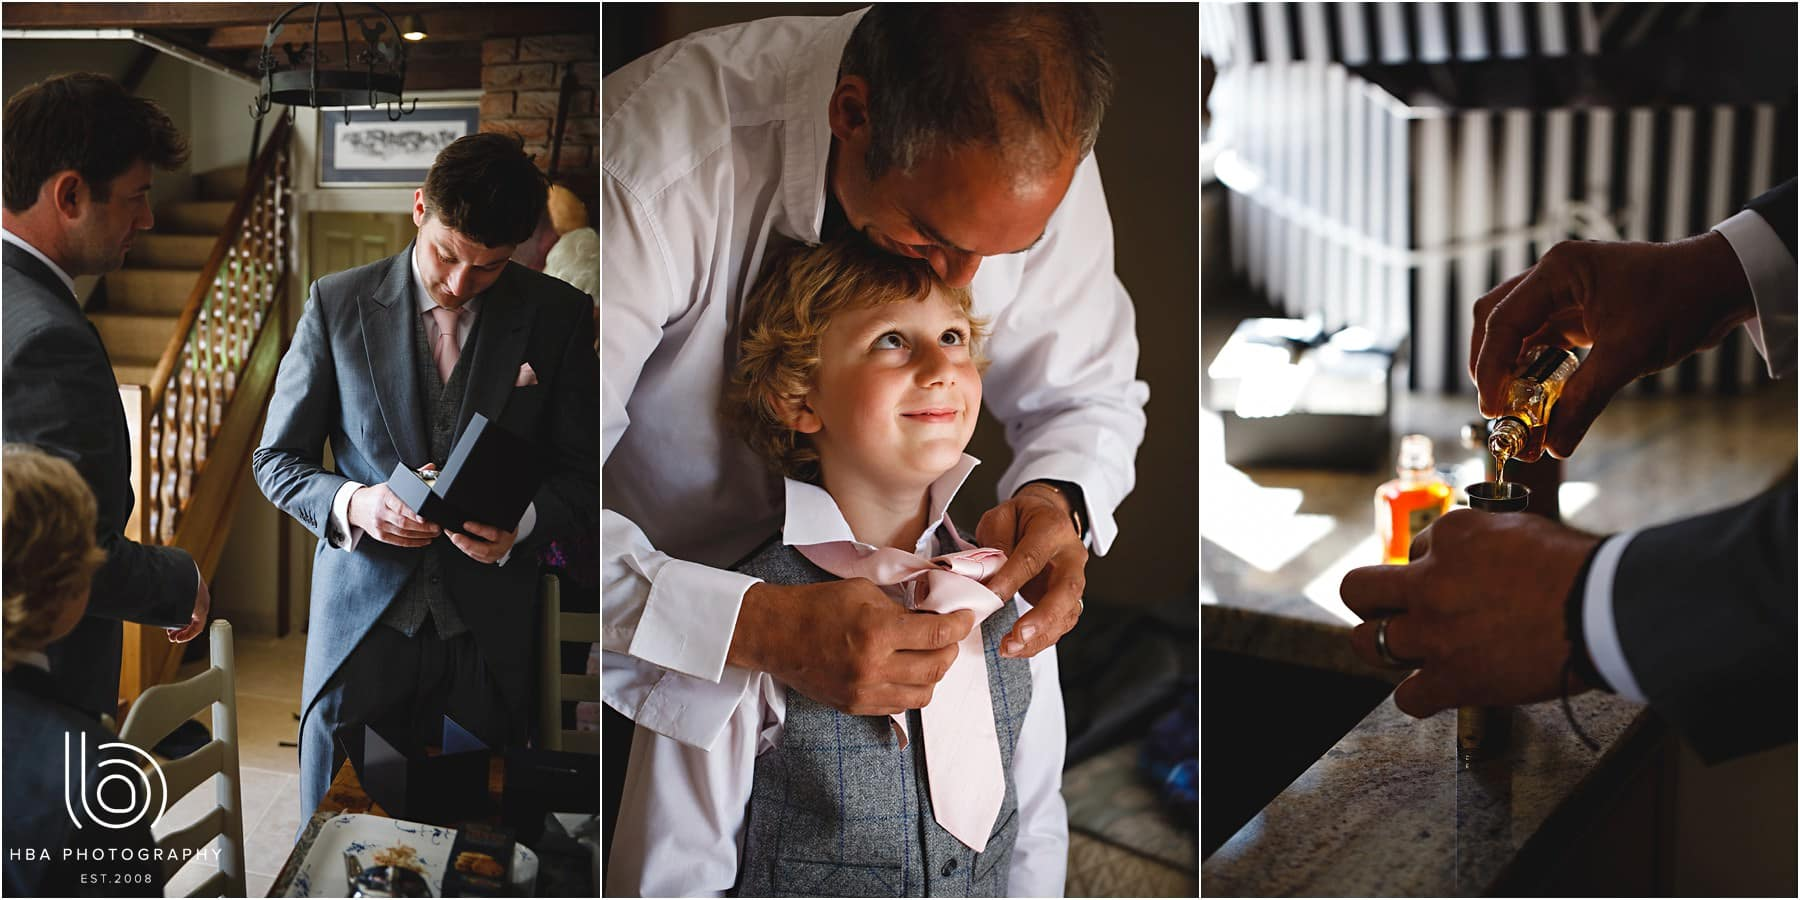 Shustoke_Farm_Barns_Wedding_Photos_Emma_Tom_0015